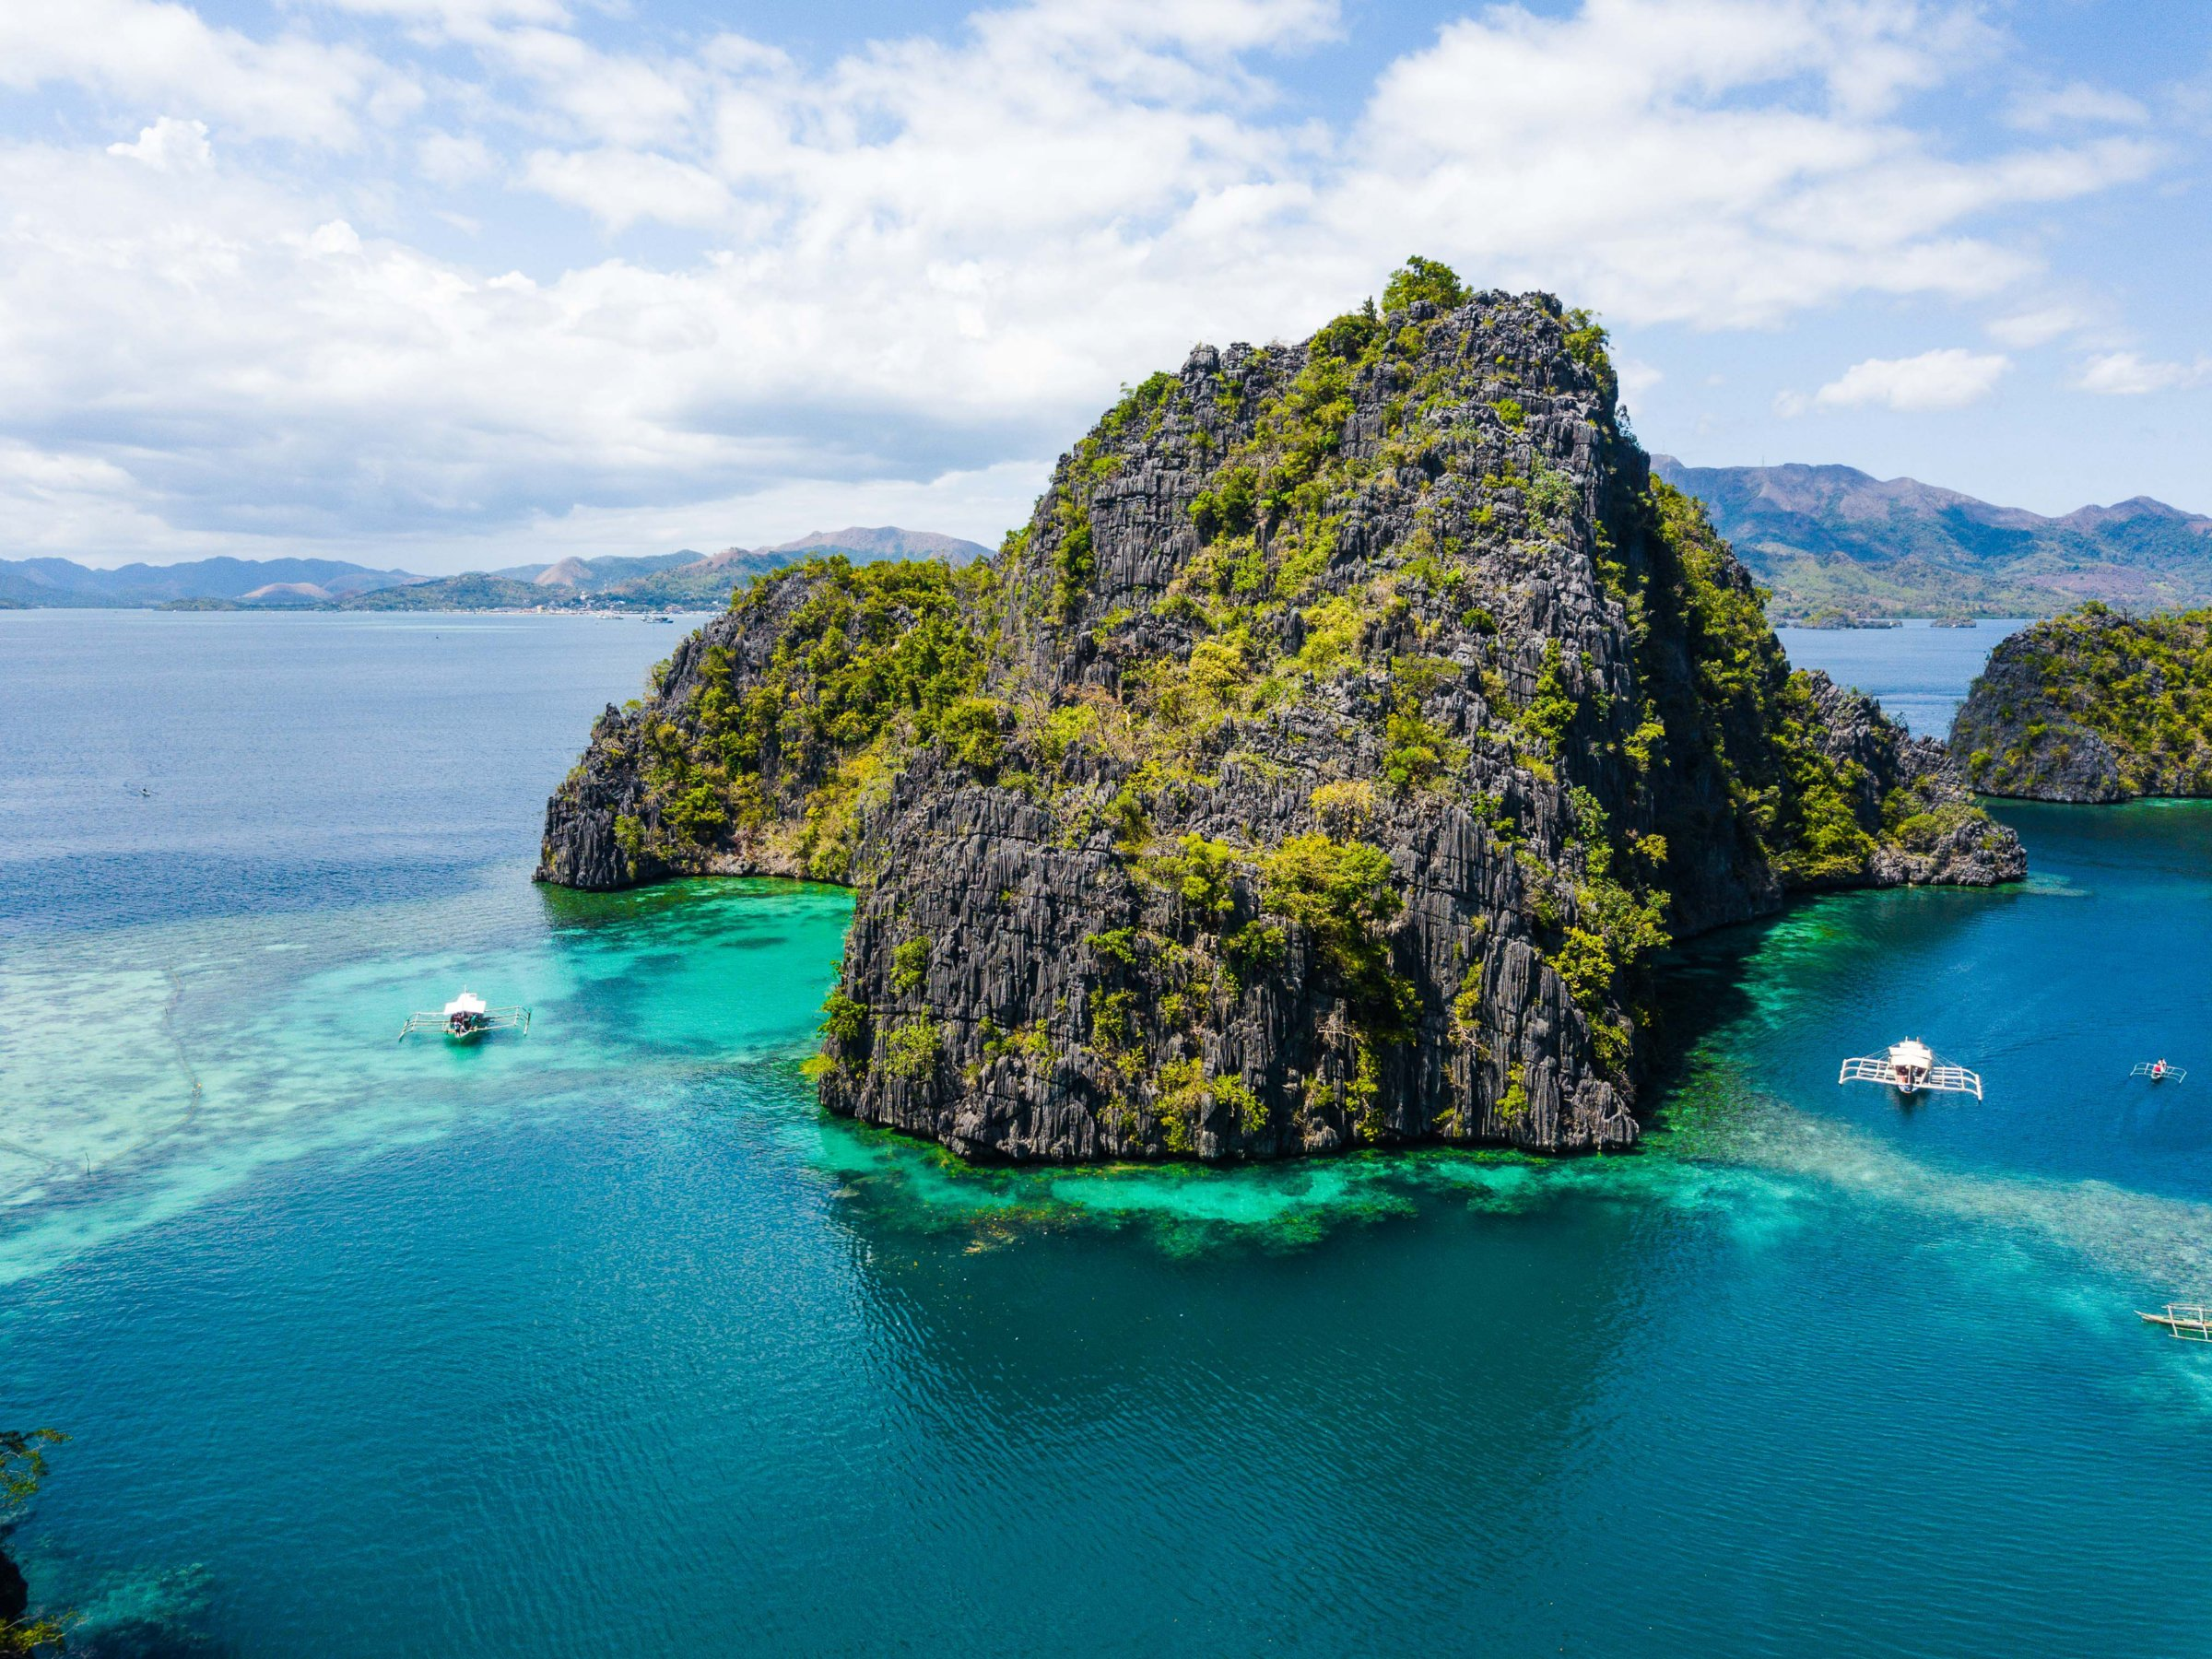 11-Day Highlights of the Islands - Philippines Itinerary